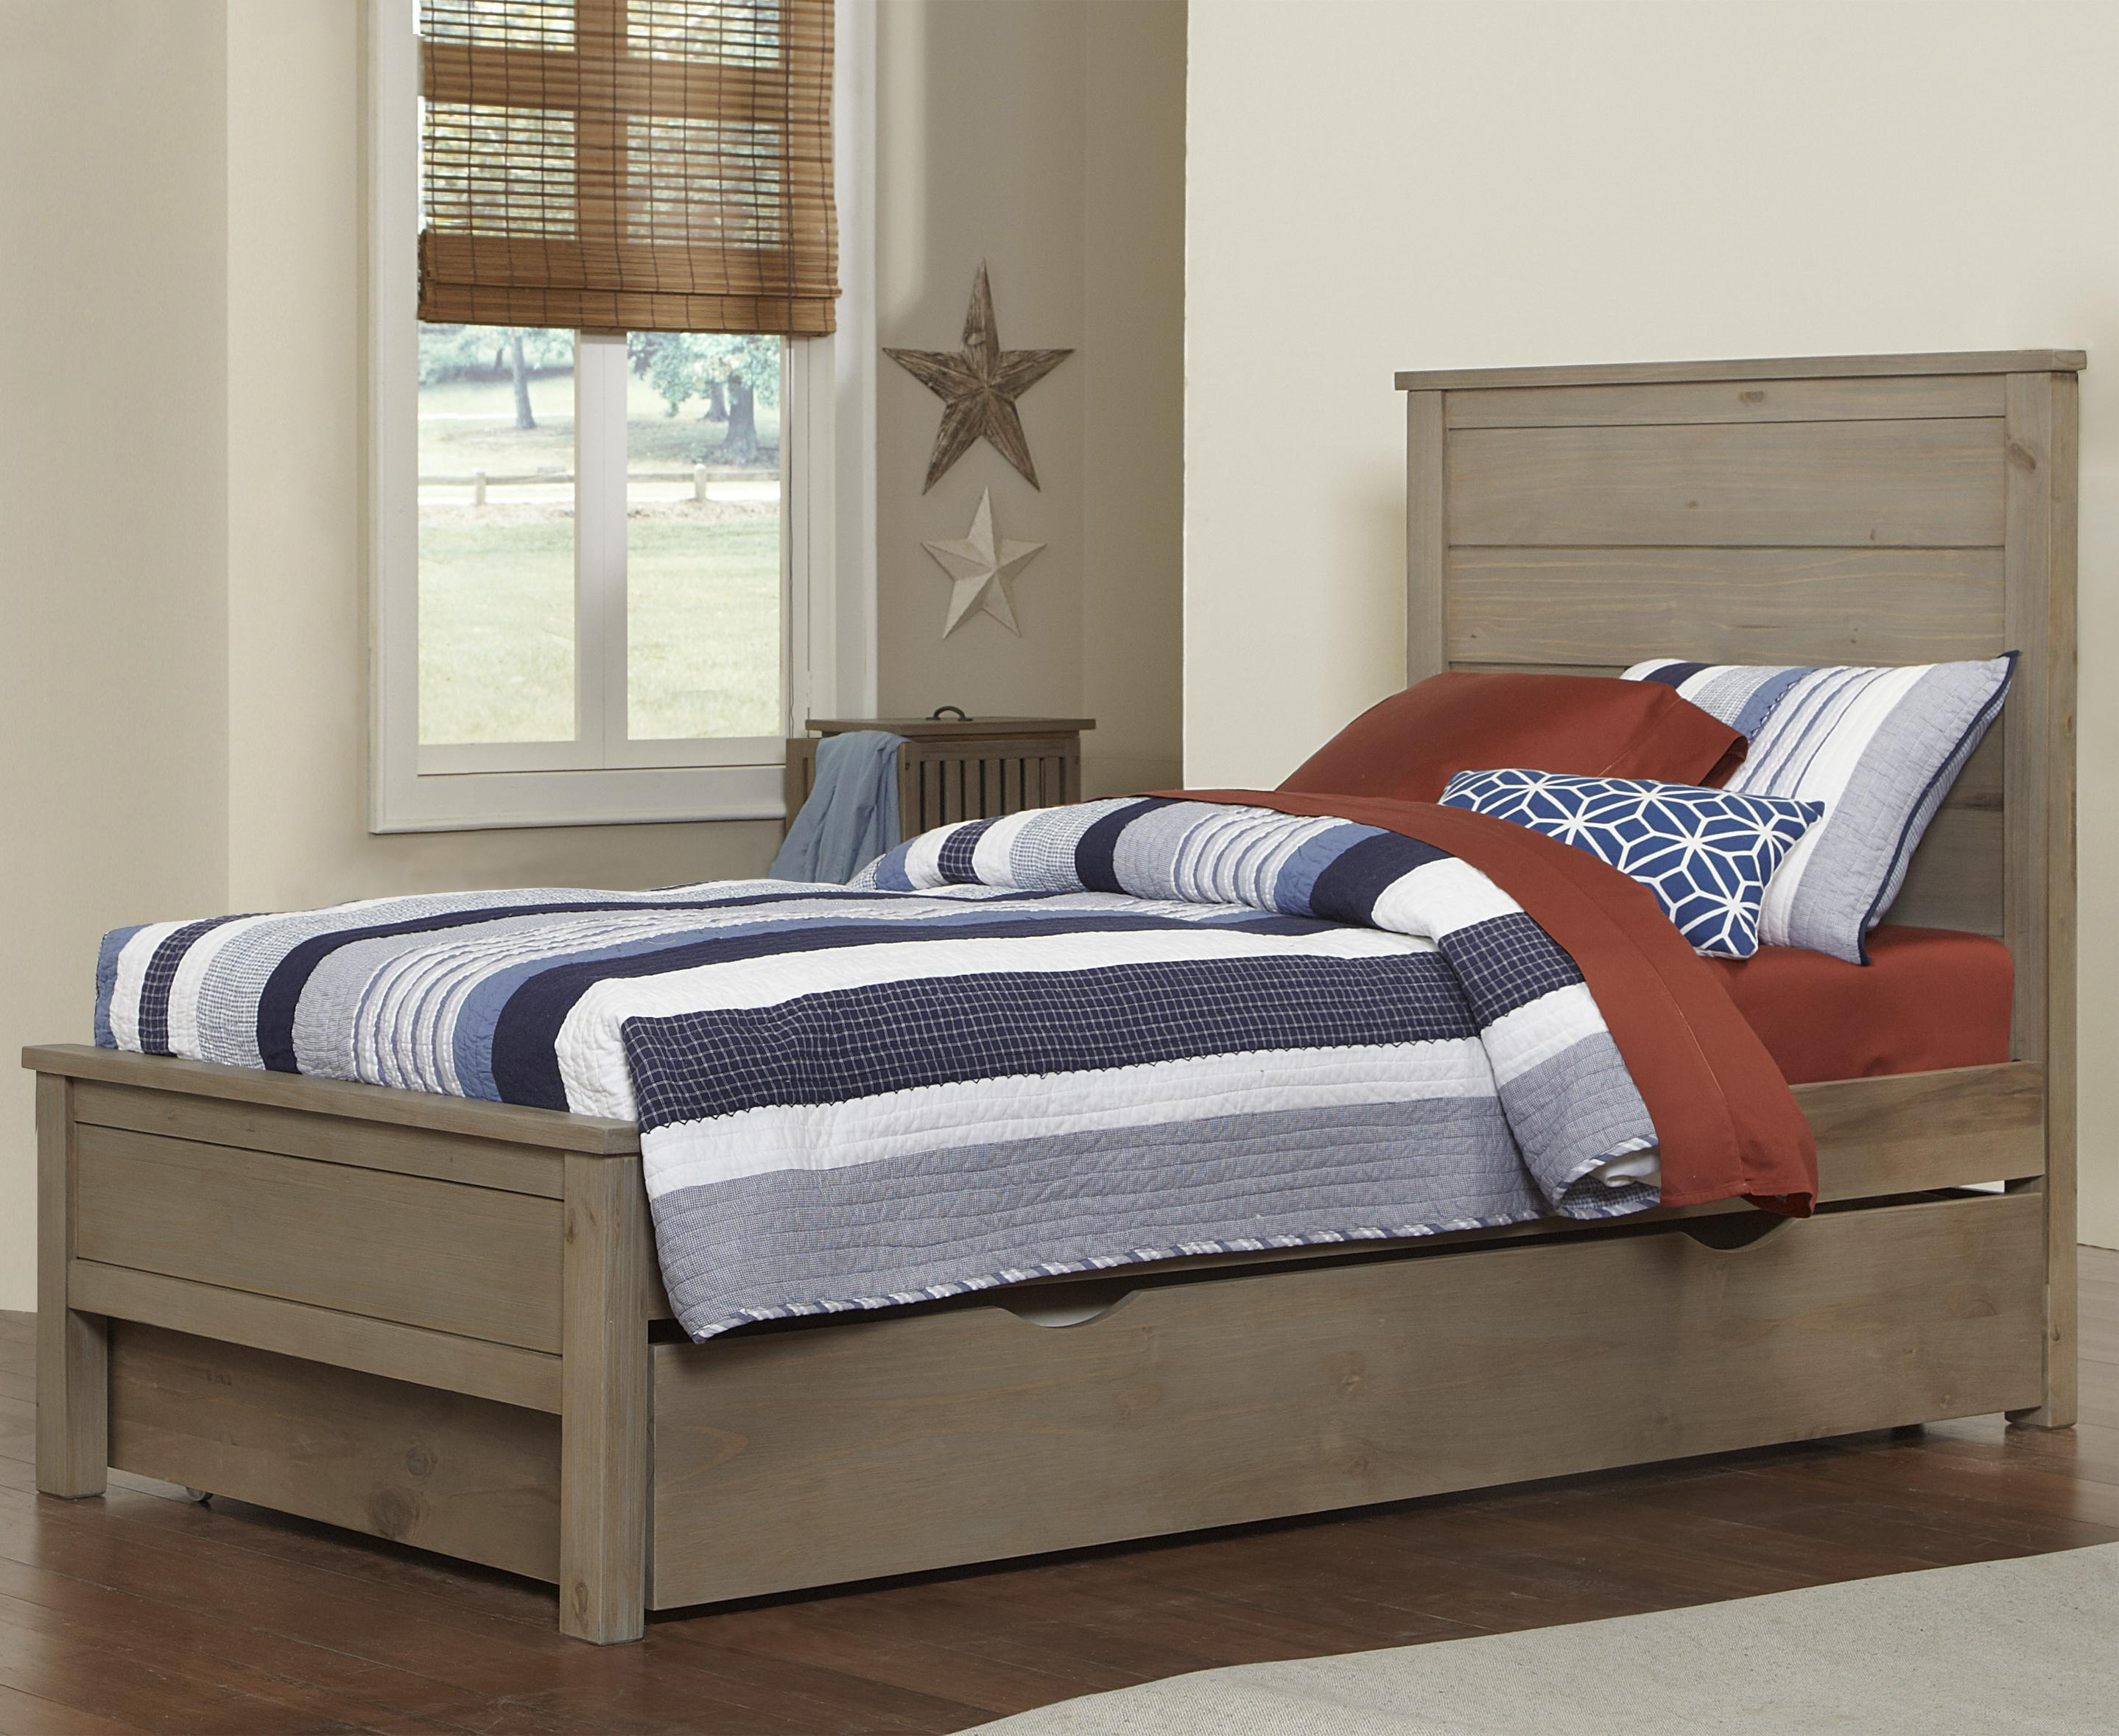 NE Kids Highlands Twin Alex Flat Panel Bed with Trundle - Item Number: 10020+10560